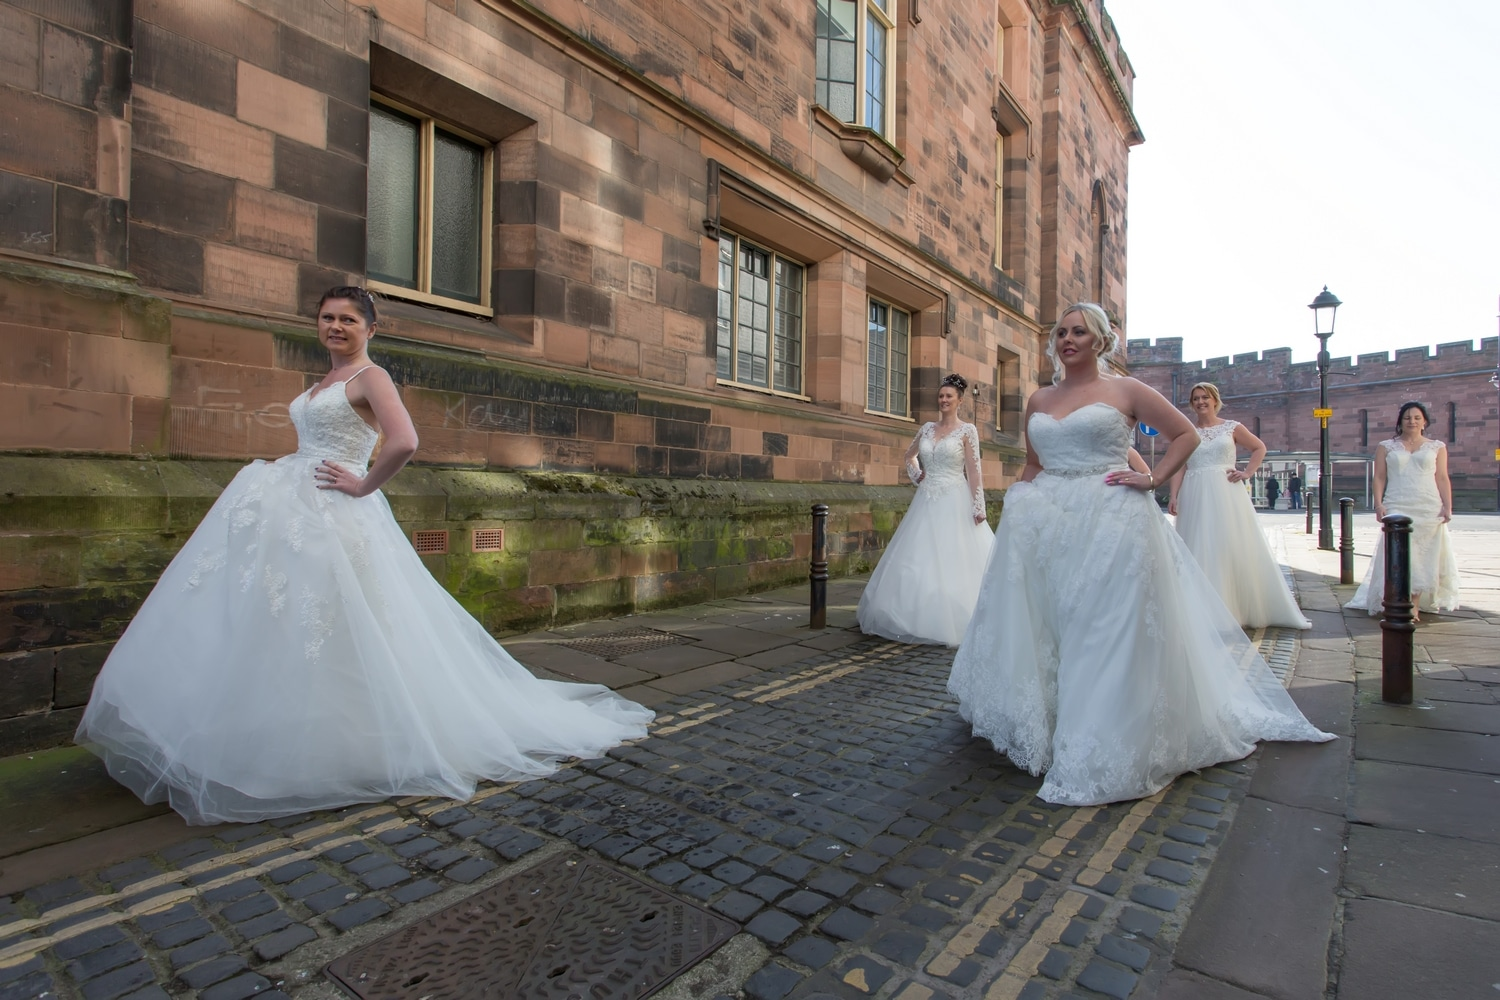 Five brides walking down a cobbled street in Carlisle